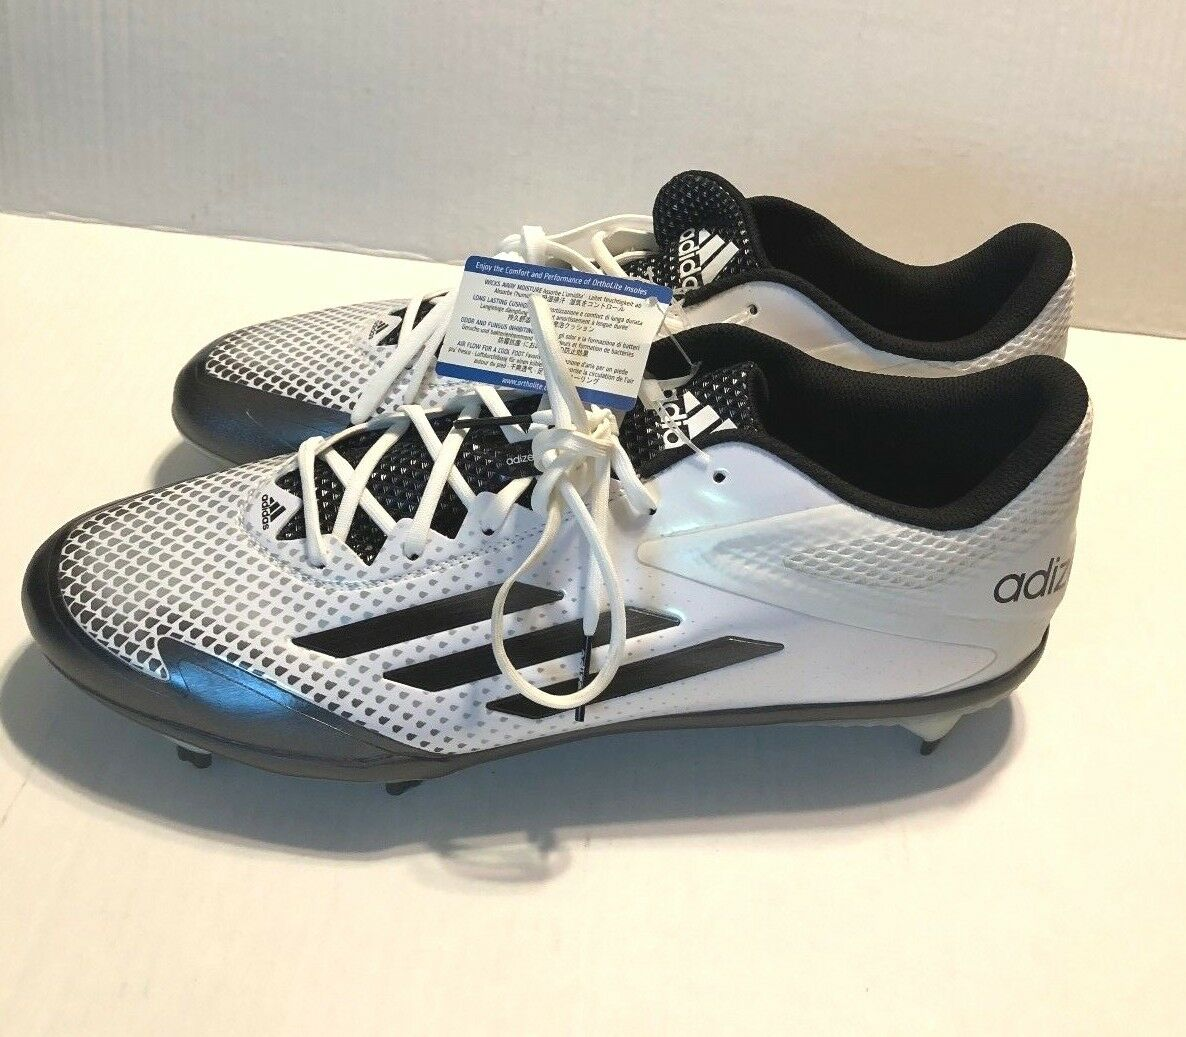 Adidas Adizero Afterburner 2.0 Metal Baseball Cleats White Gray Comfortable The latest discount shoes for men and women